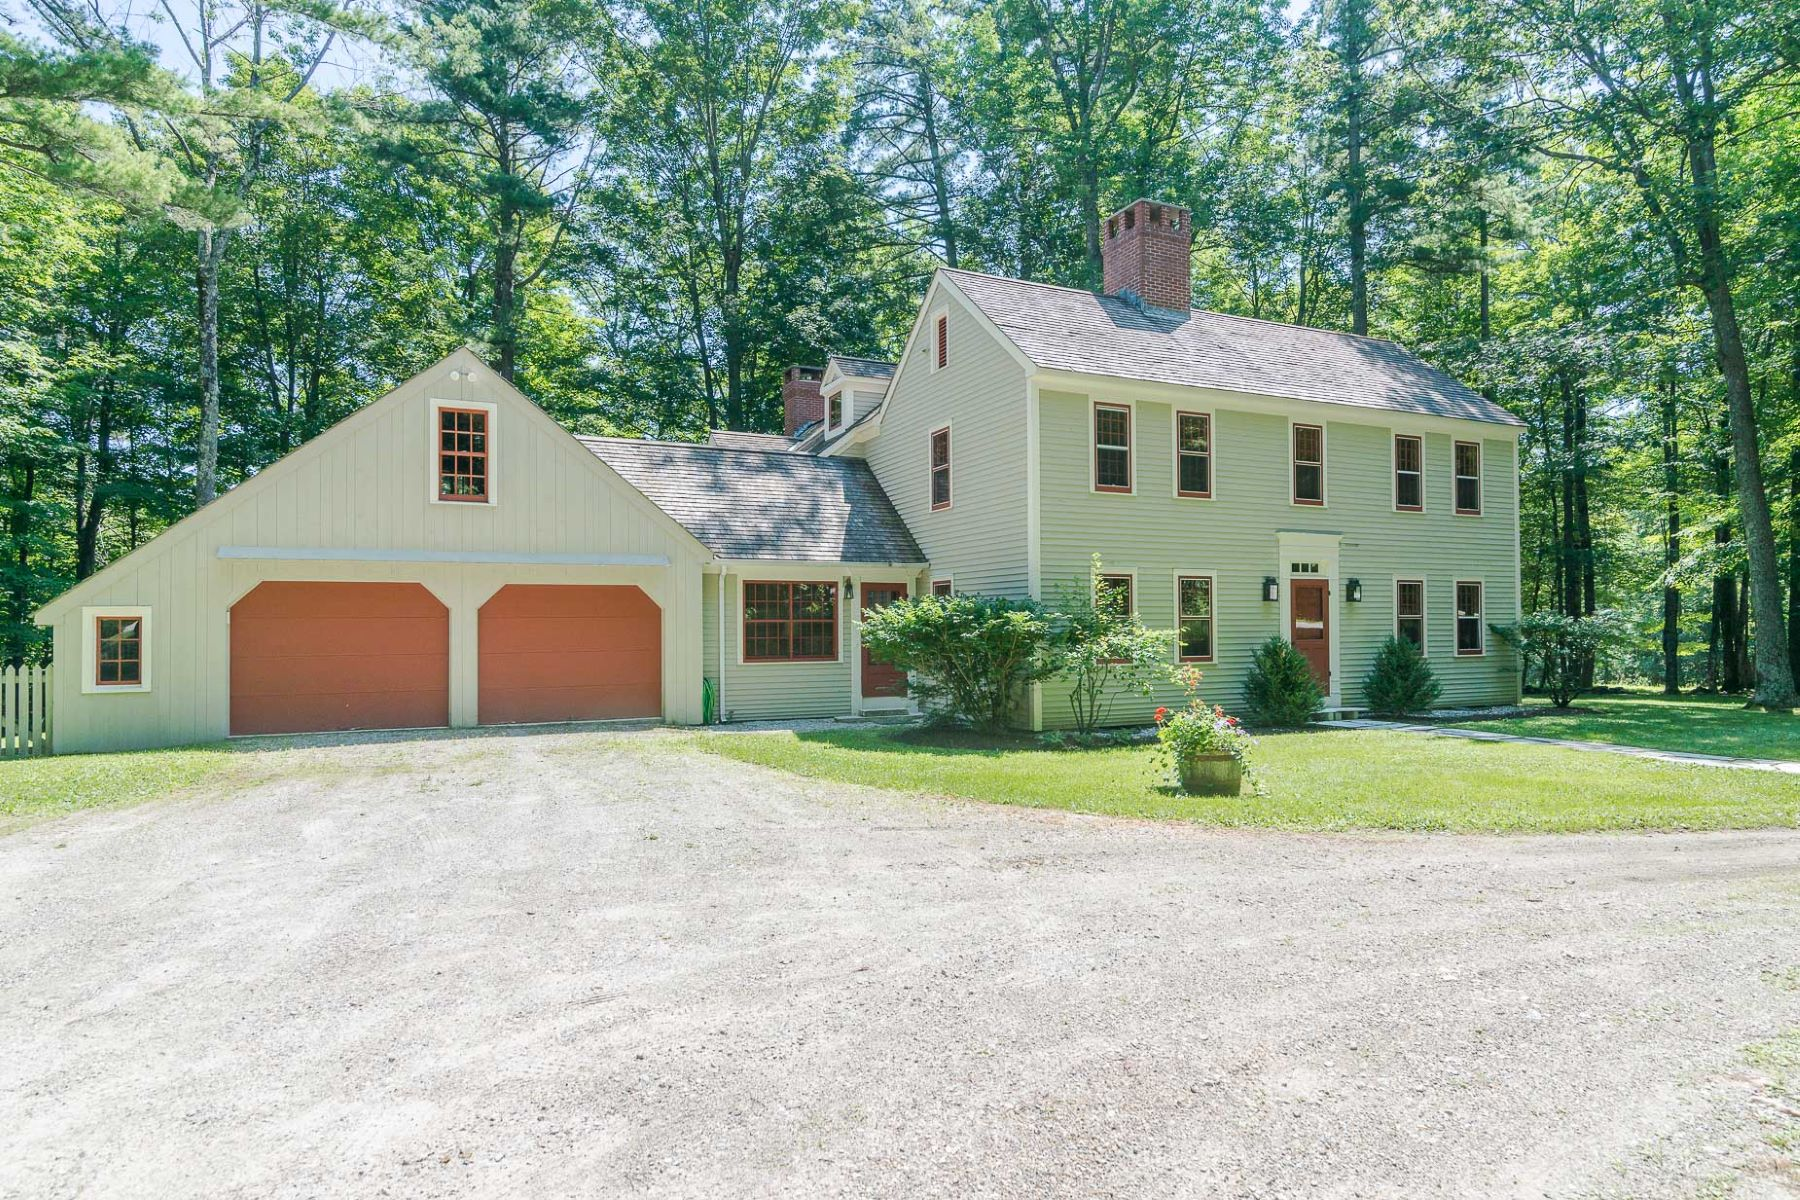 Single Family Home for Sale at Majestic Colonial Saltbox 717 Powderhorn Manchester, Vermont 05255 United States